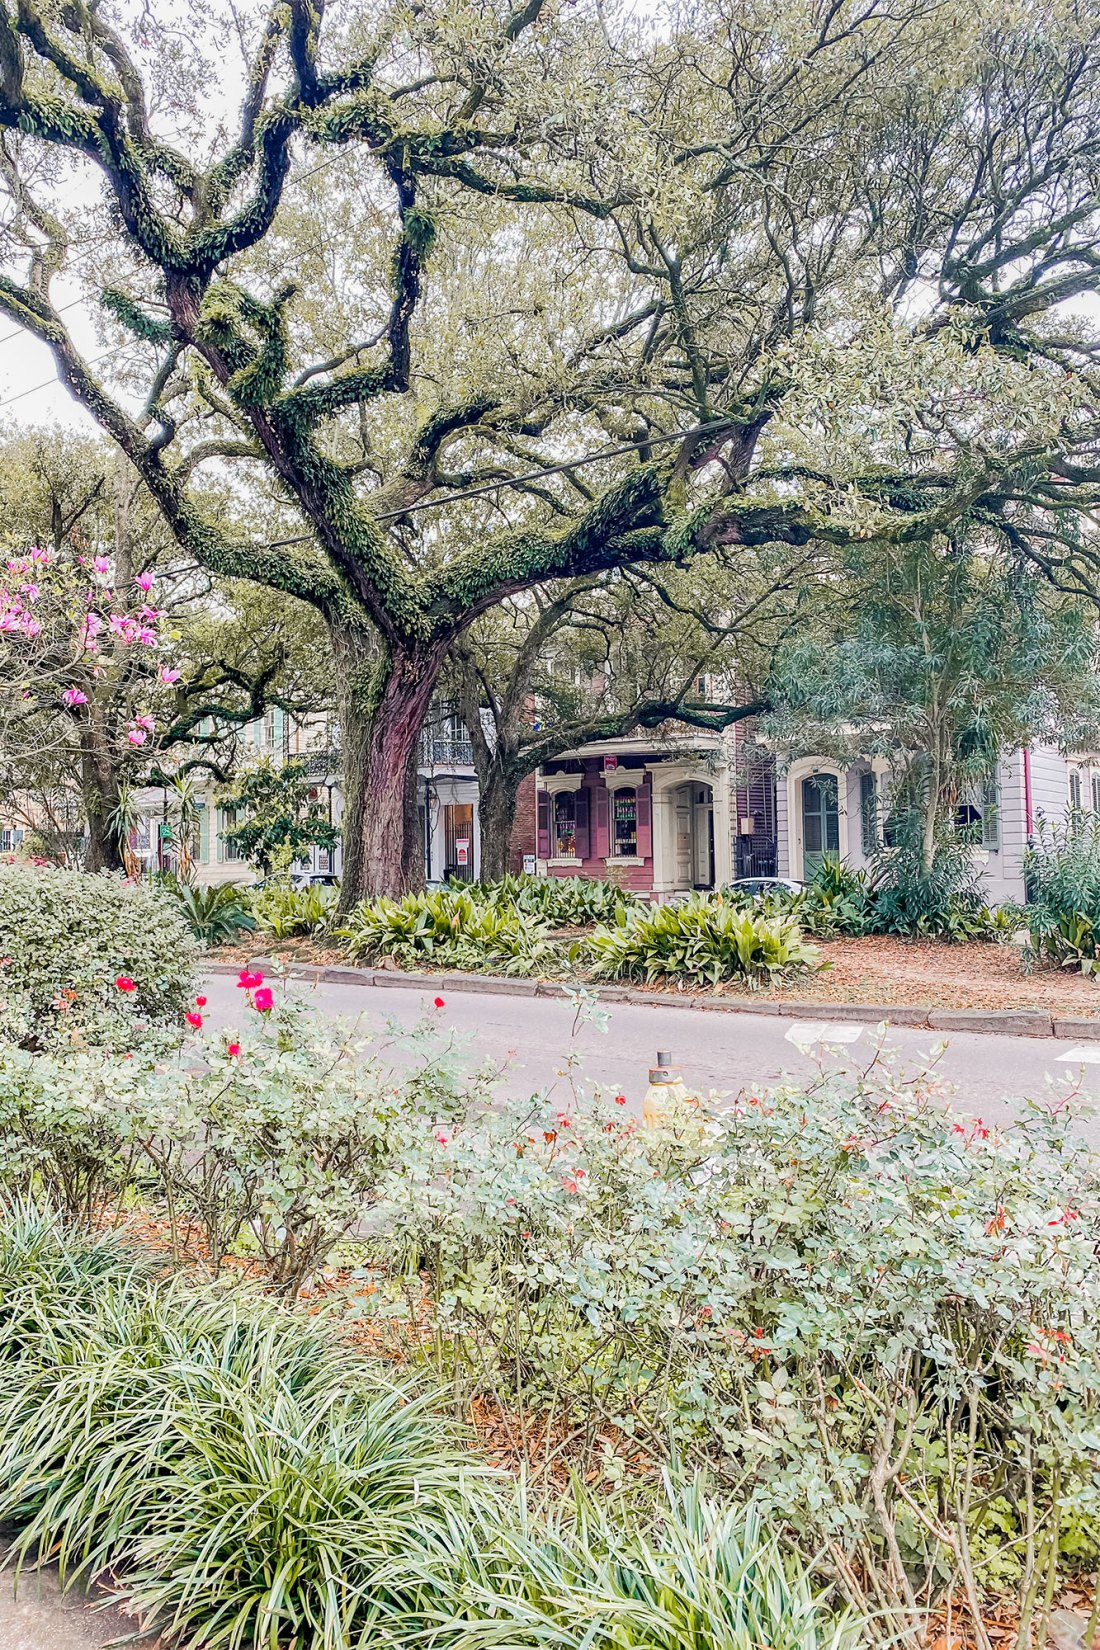 Live oak tree in front of colorful home in New Orleans